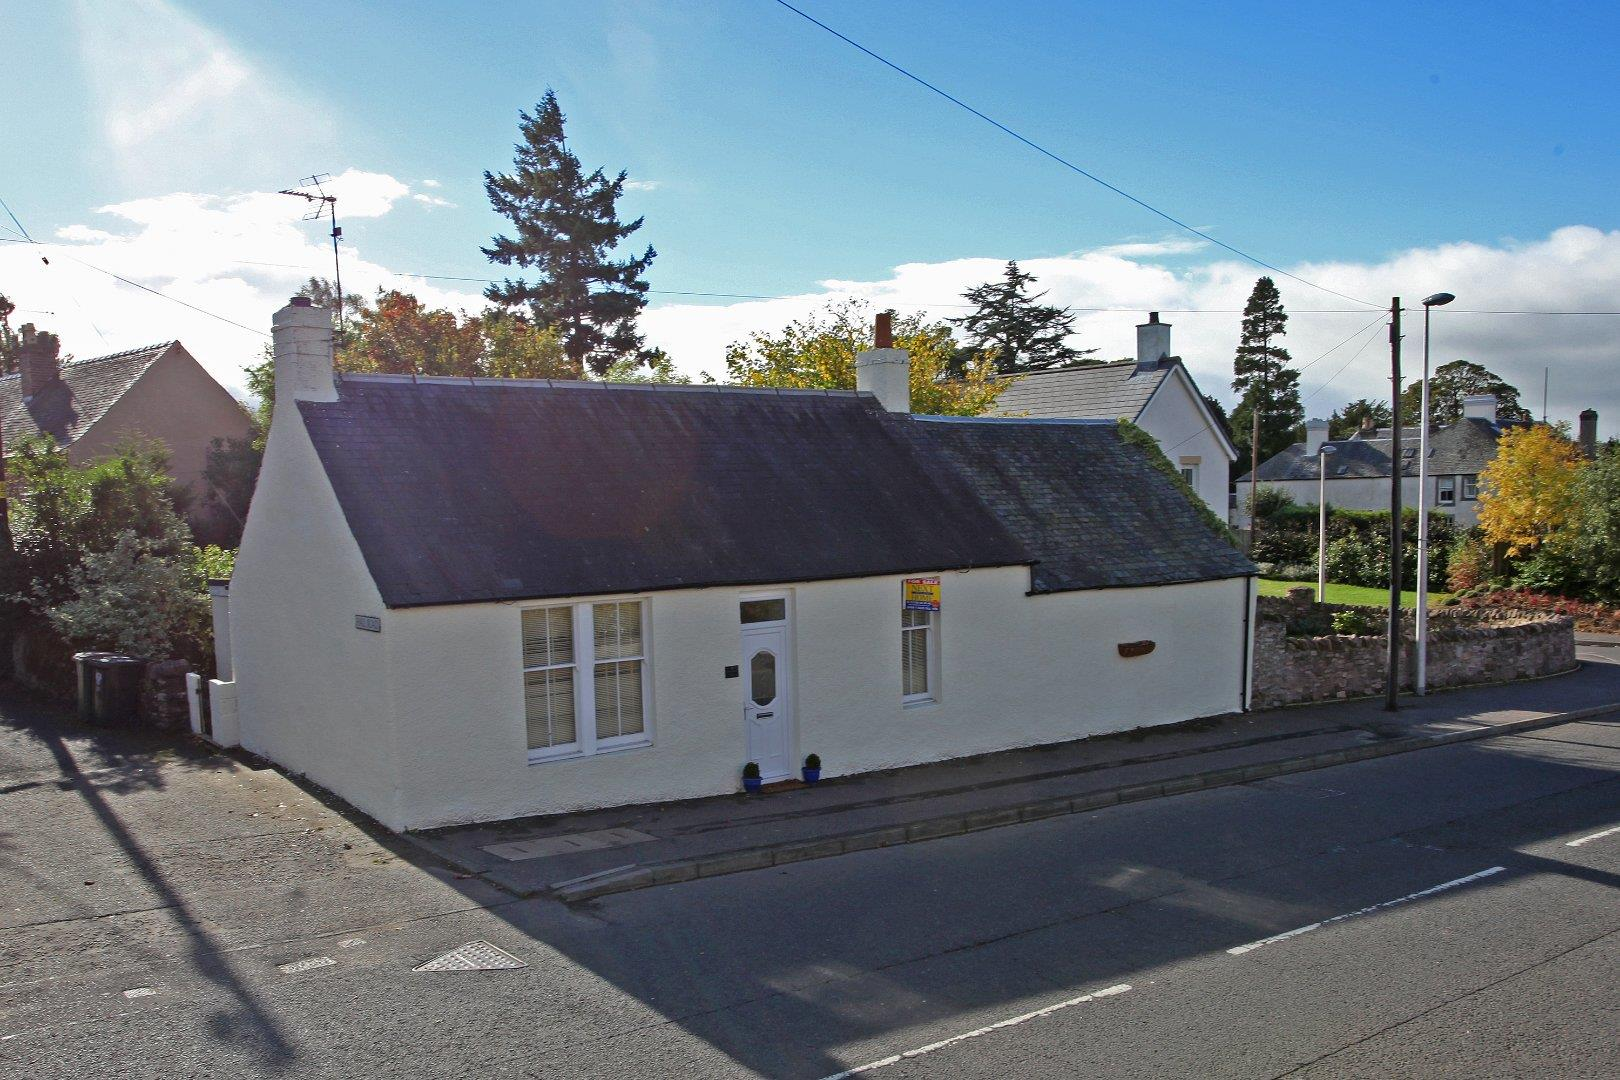 Schiehallion, Main Road, Aberuthven, Perthshire, PH3 1HB, UK